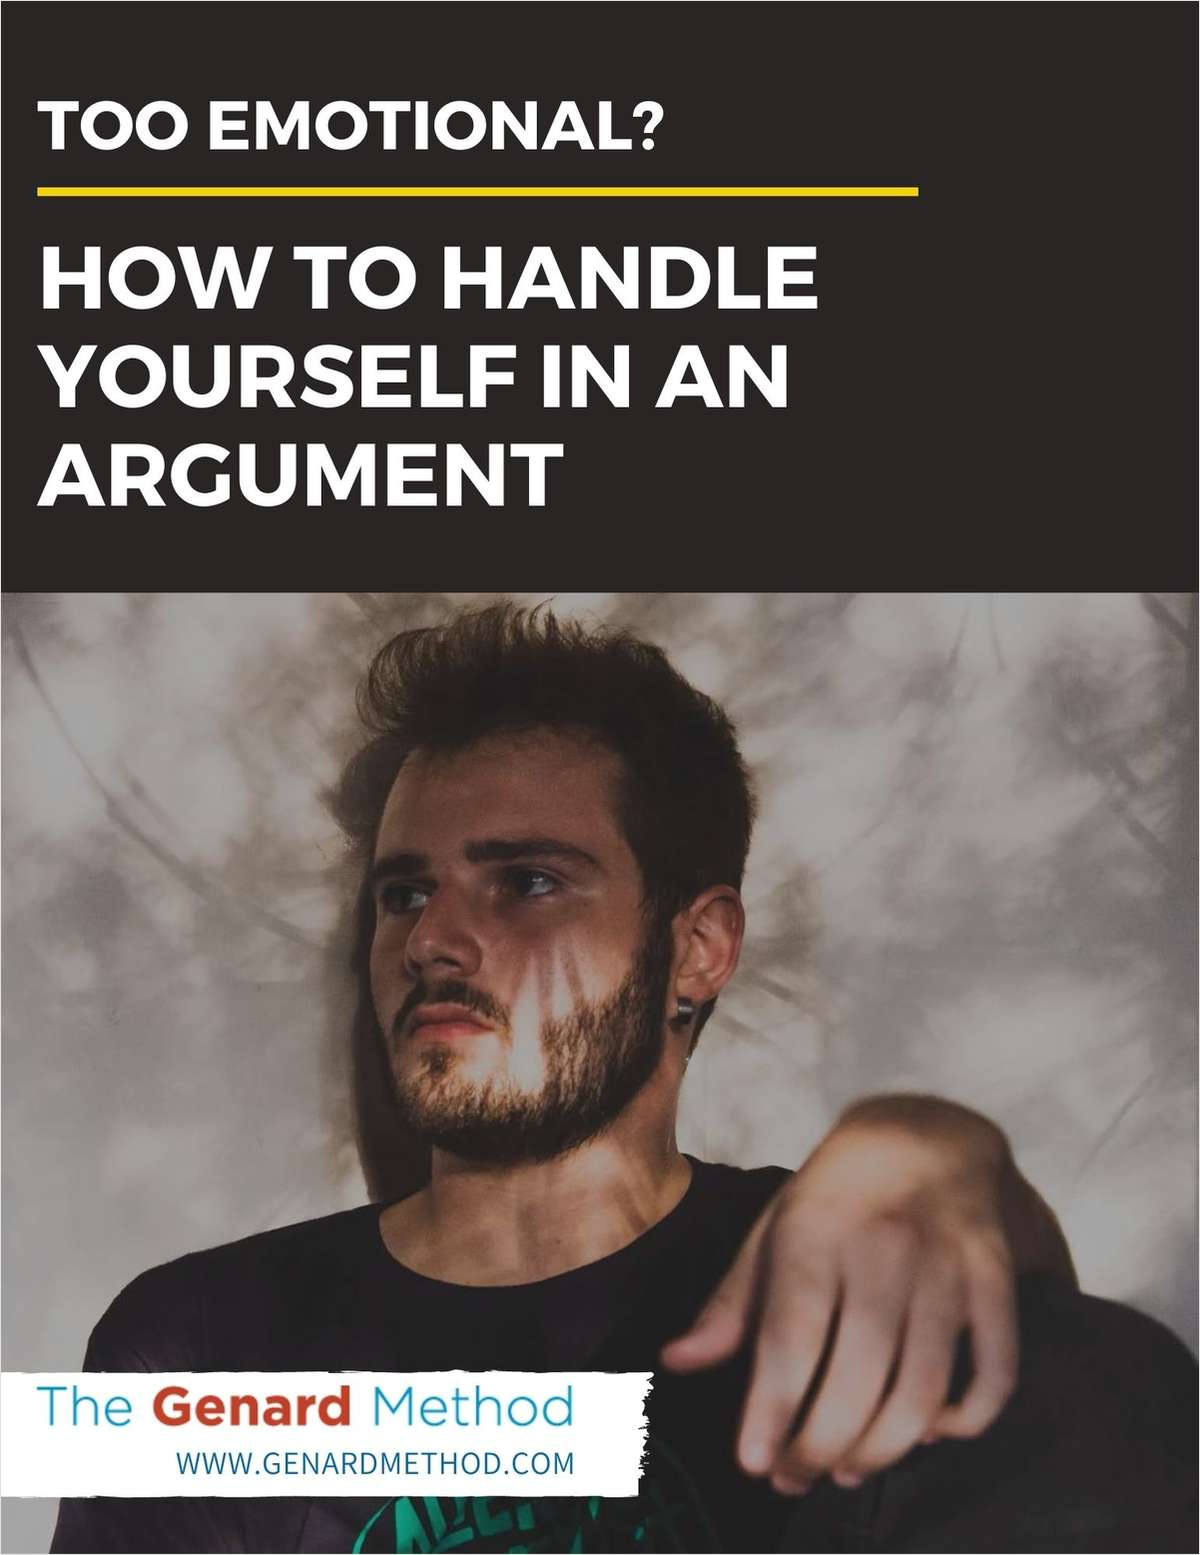 Too Emotional? -- How to Handle Yourself in an Argument